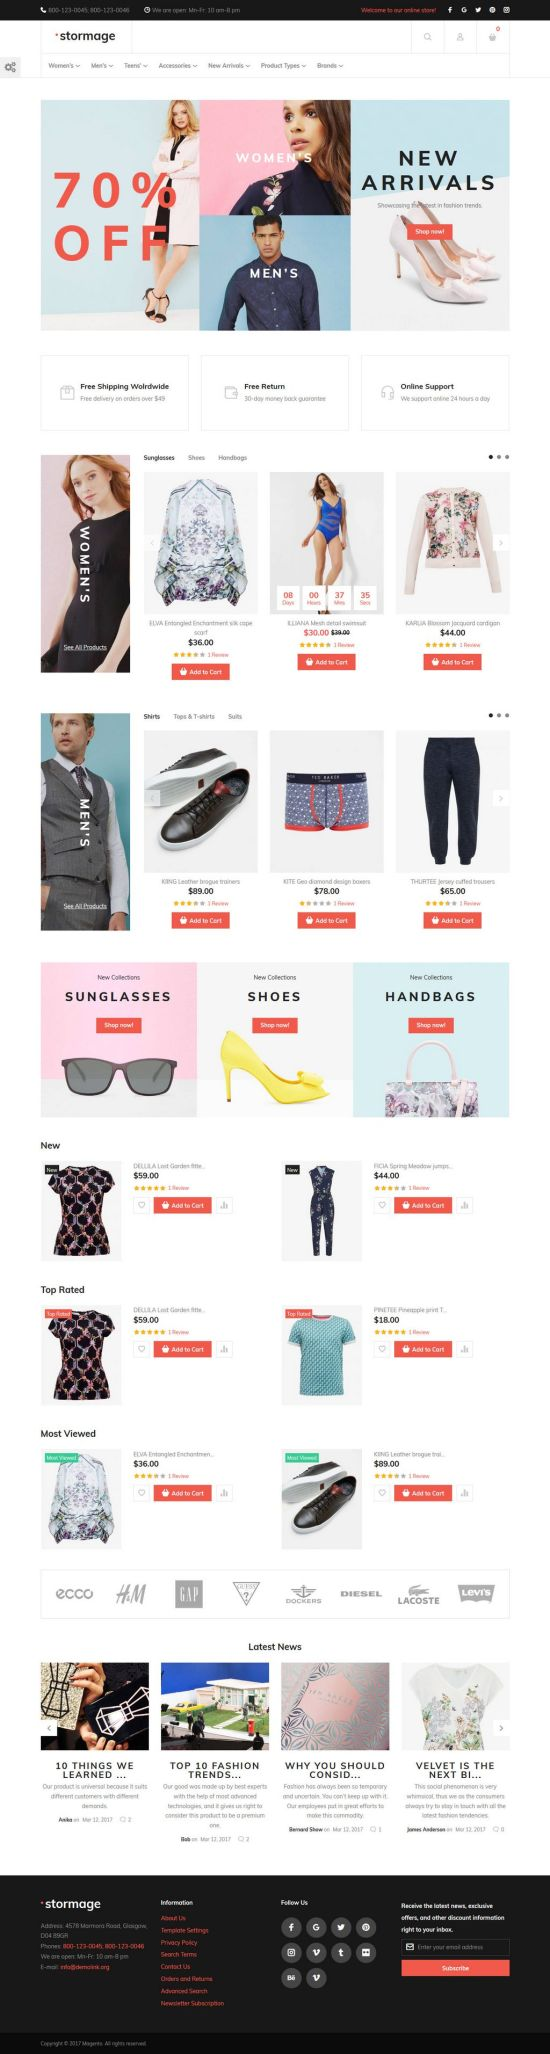 stormage magento templatemonster template 01 - StorMage Magento Theme